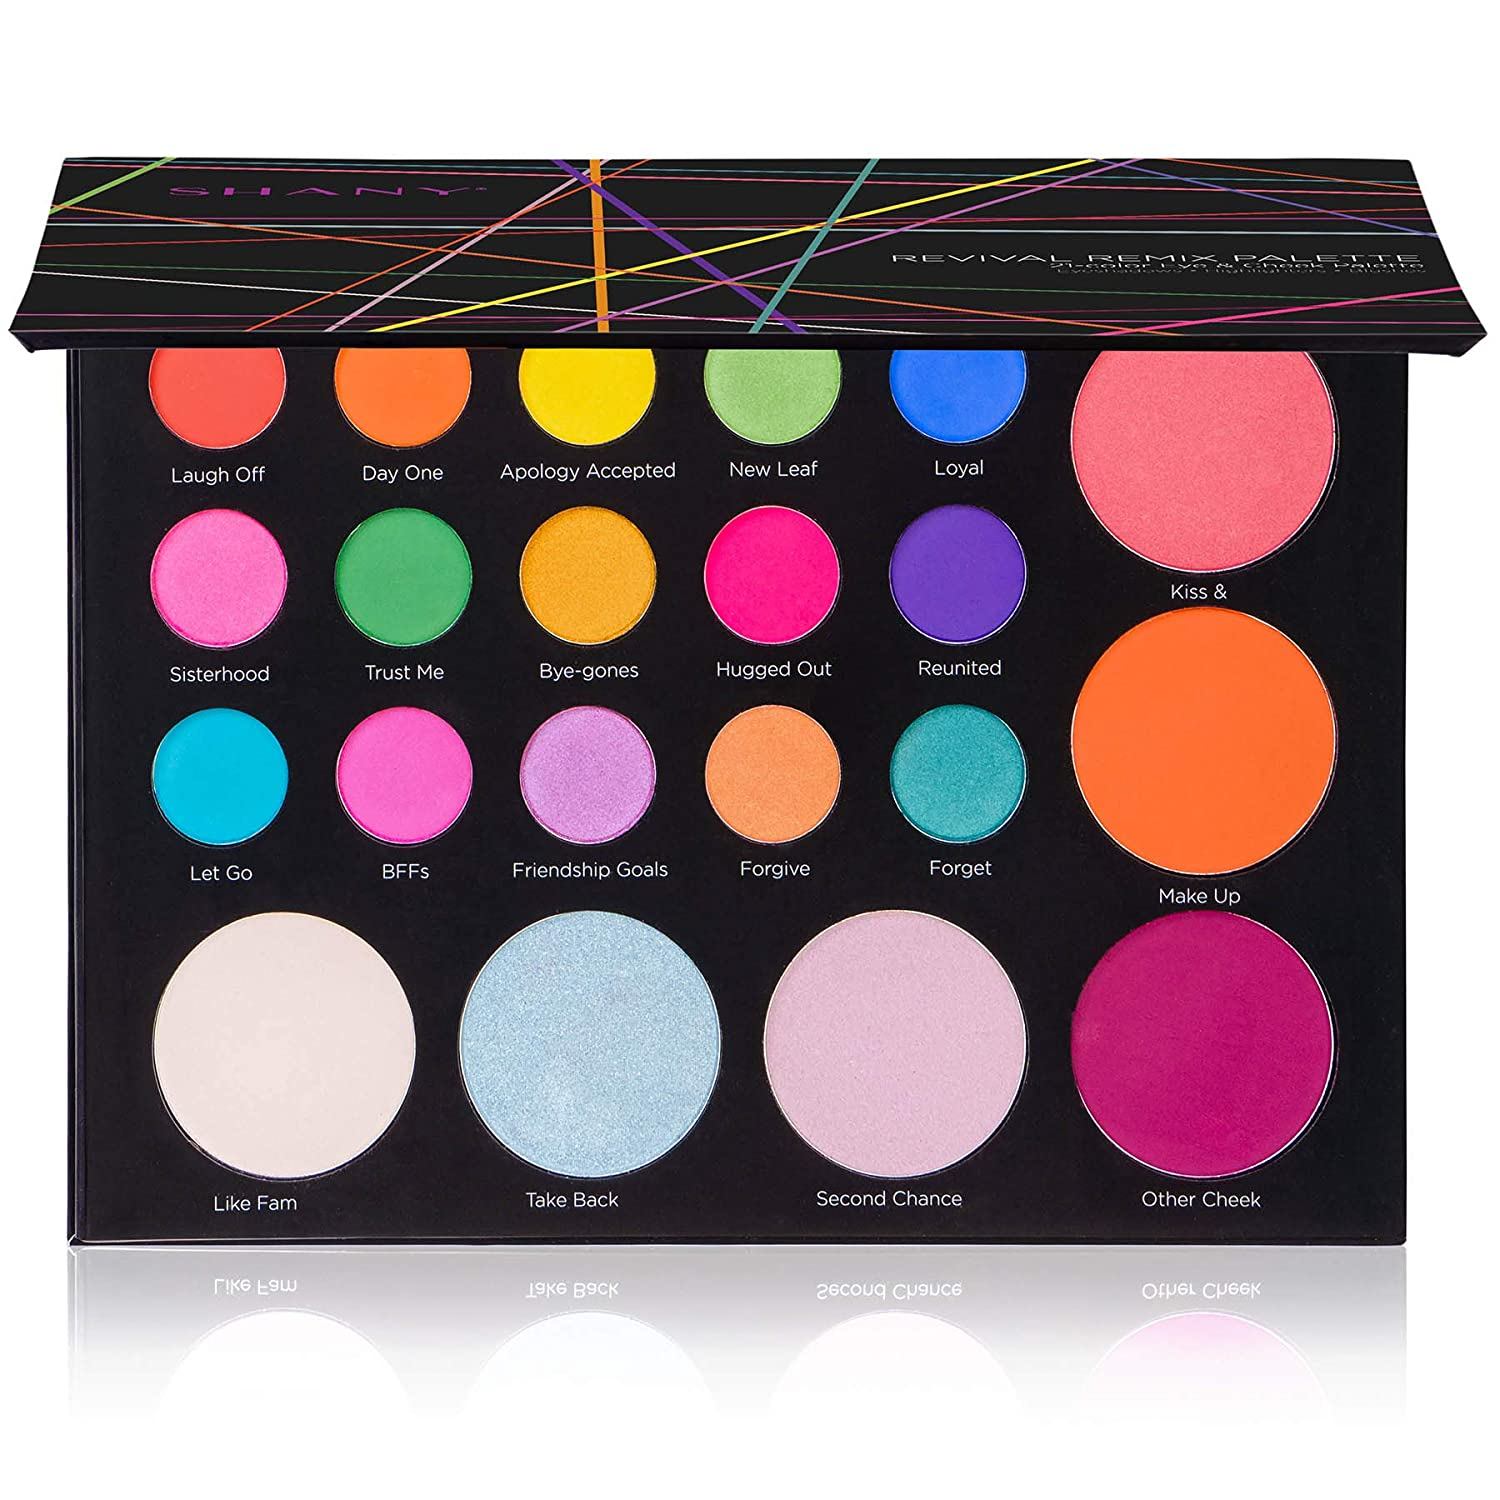 SHANY Revival Remix Palette - 21-Color Eye & Cheek Palette with 15 Matte and Shimmer Eyeshadows, 3 Highlighters and 3 Blushes